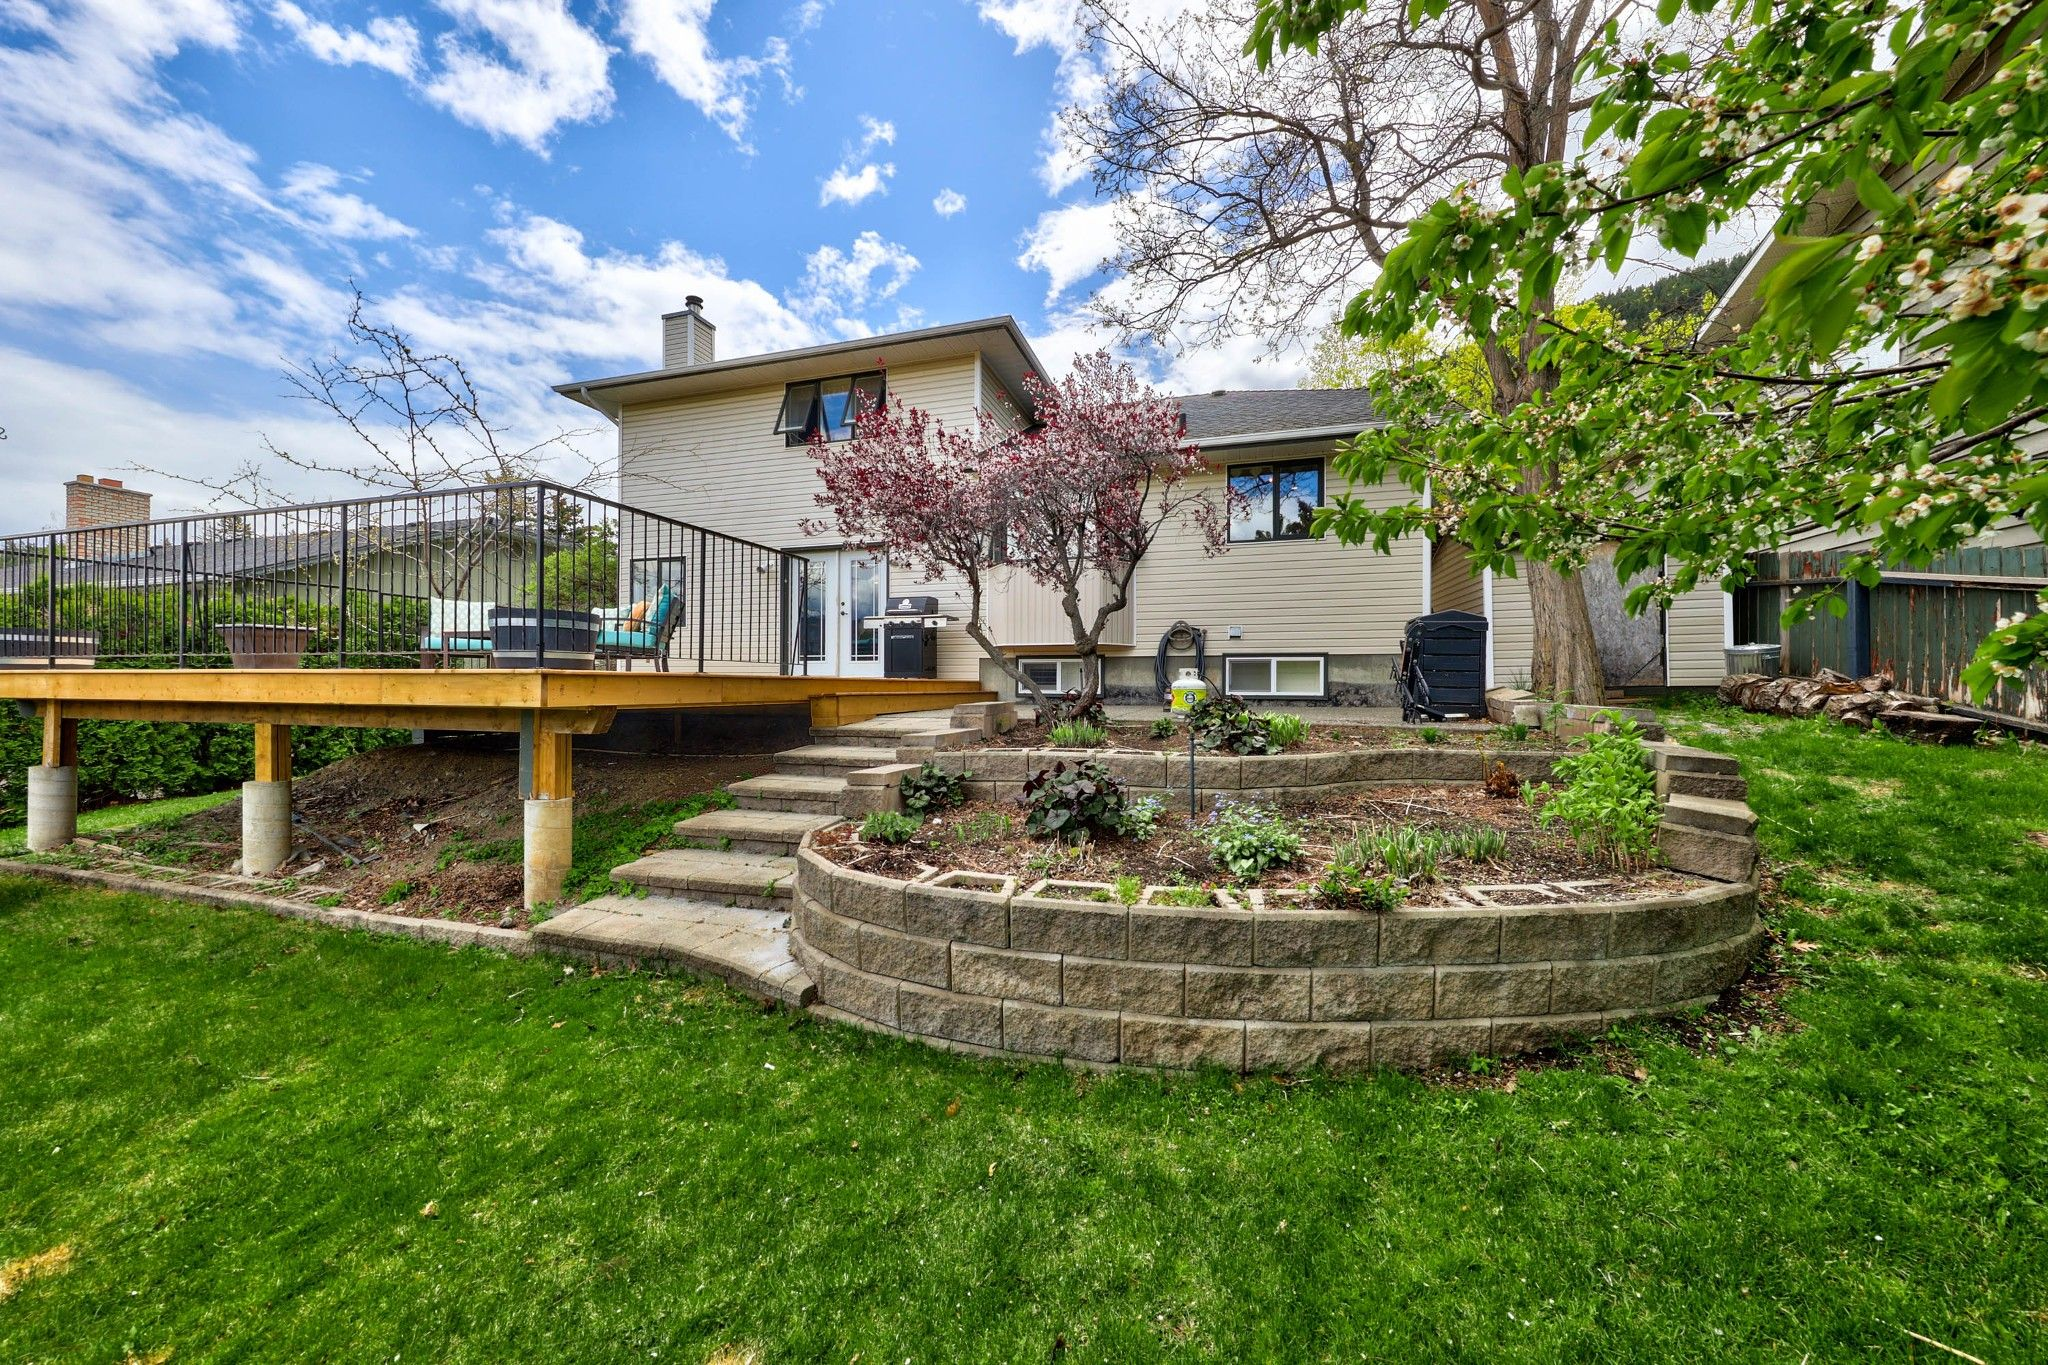 Photo 4: Photos: 2816 Capilano Drive in Kamloops: Juniper Heights House for sale : MLS®# 162002